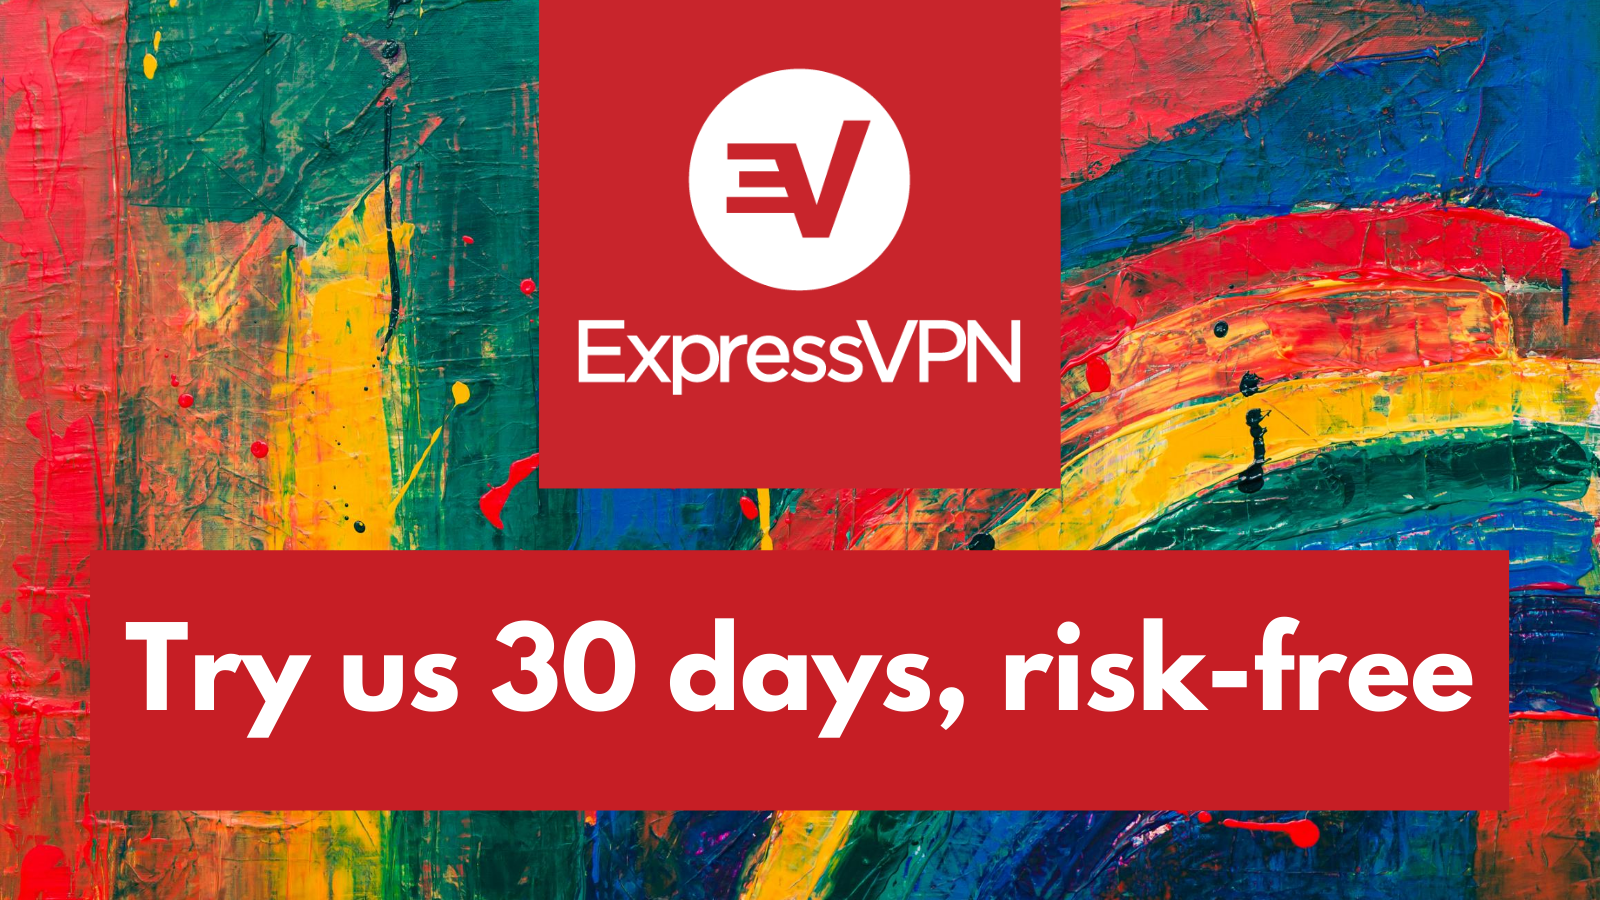 Get Expressvpn Risk Free Trial Account For 30 Days 2021 Hack